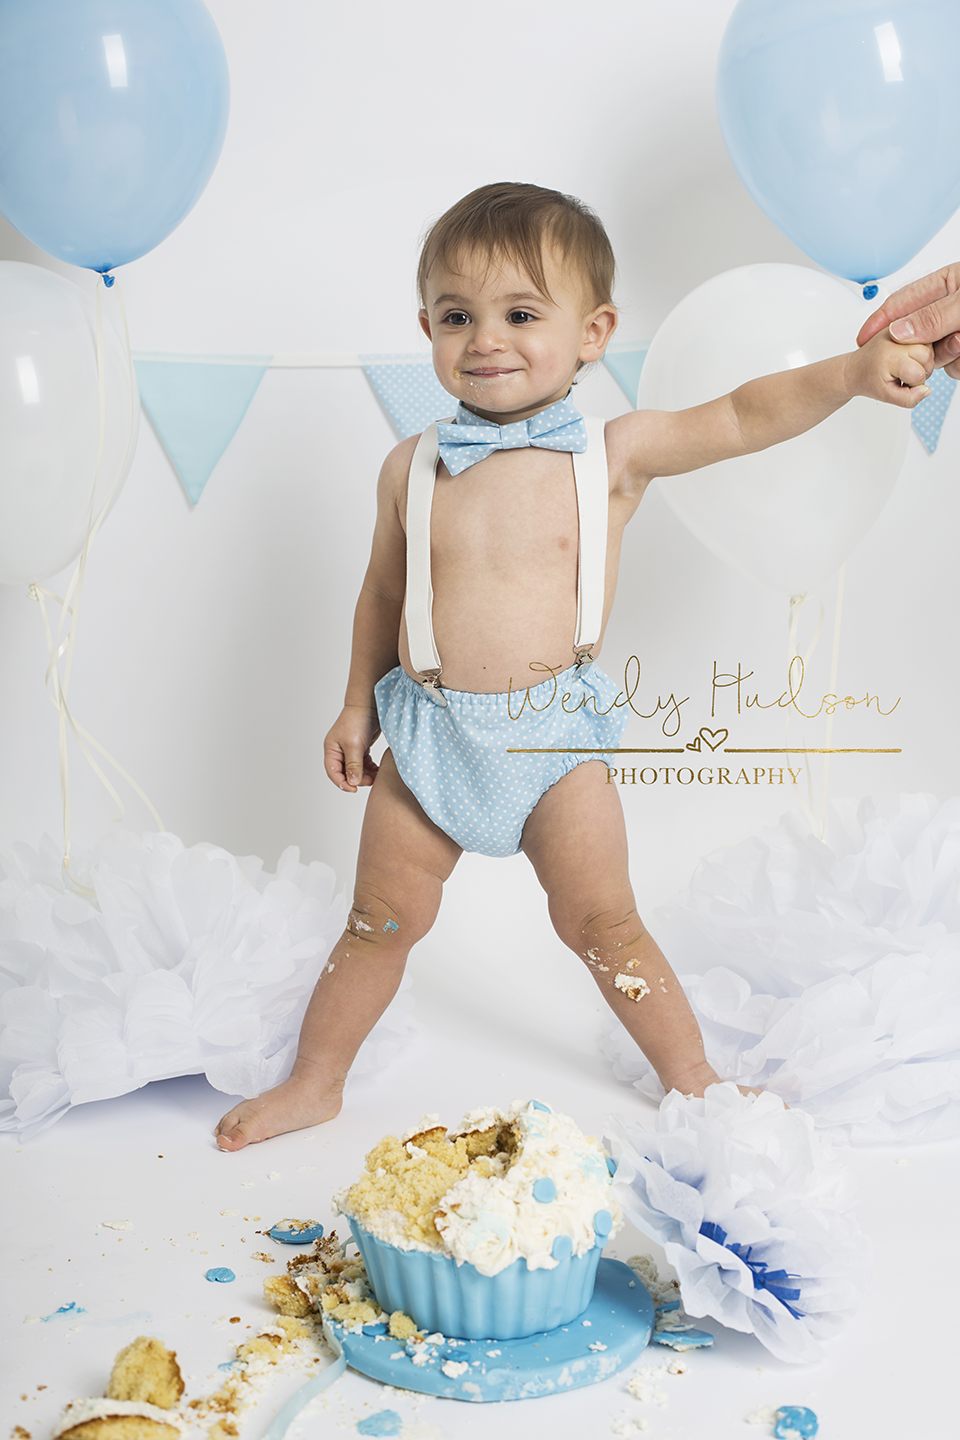 Cake smash baby photoshoot